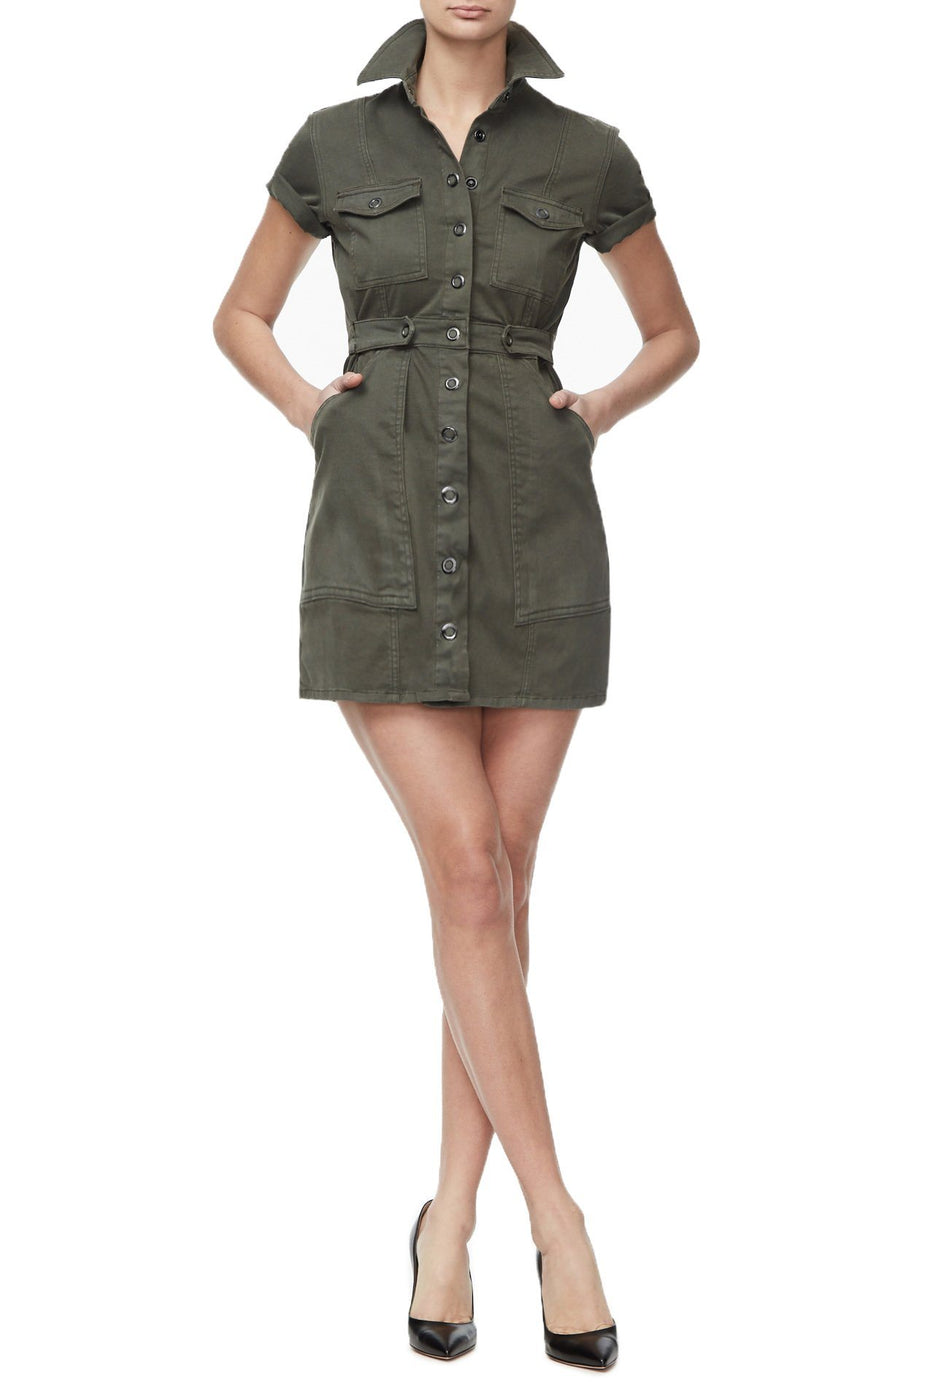 THE LEAD LADY DRESS | OLIVE006